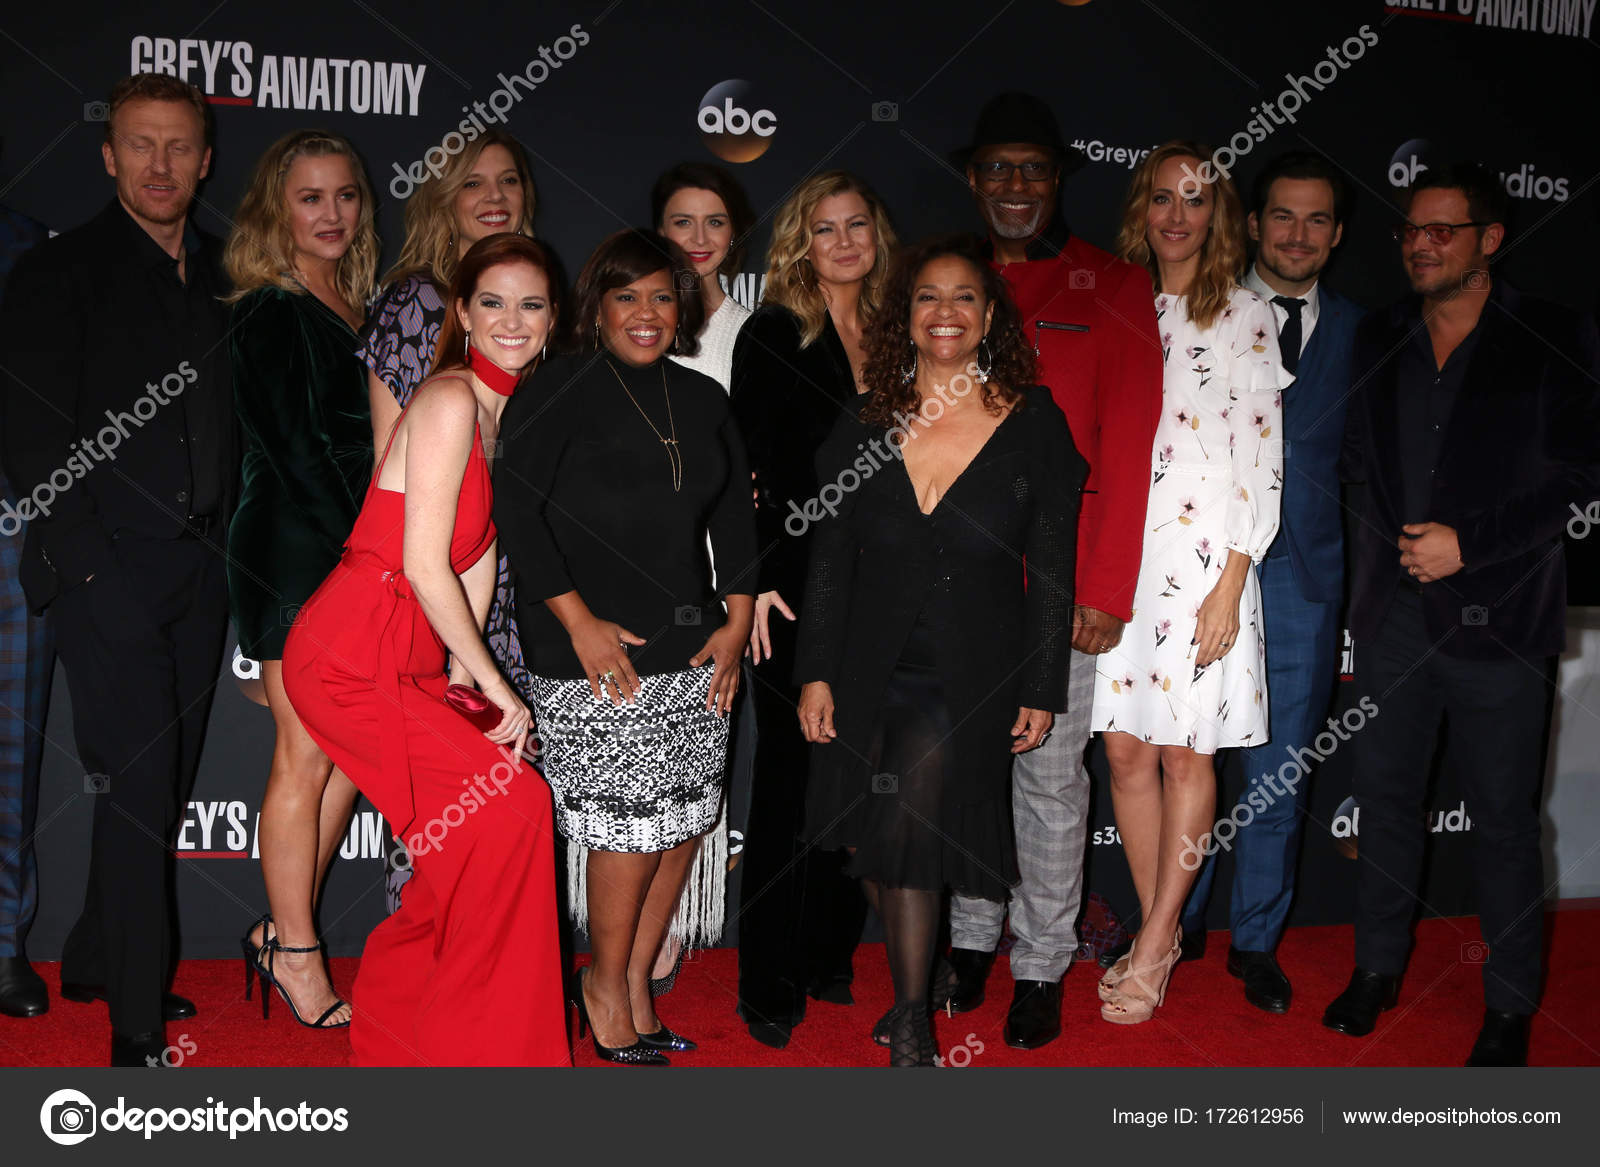 Greys Anatomy Cast Stock Editorial Photo Sbukley 172612956